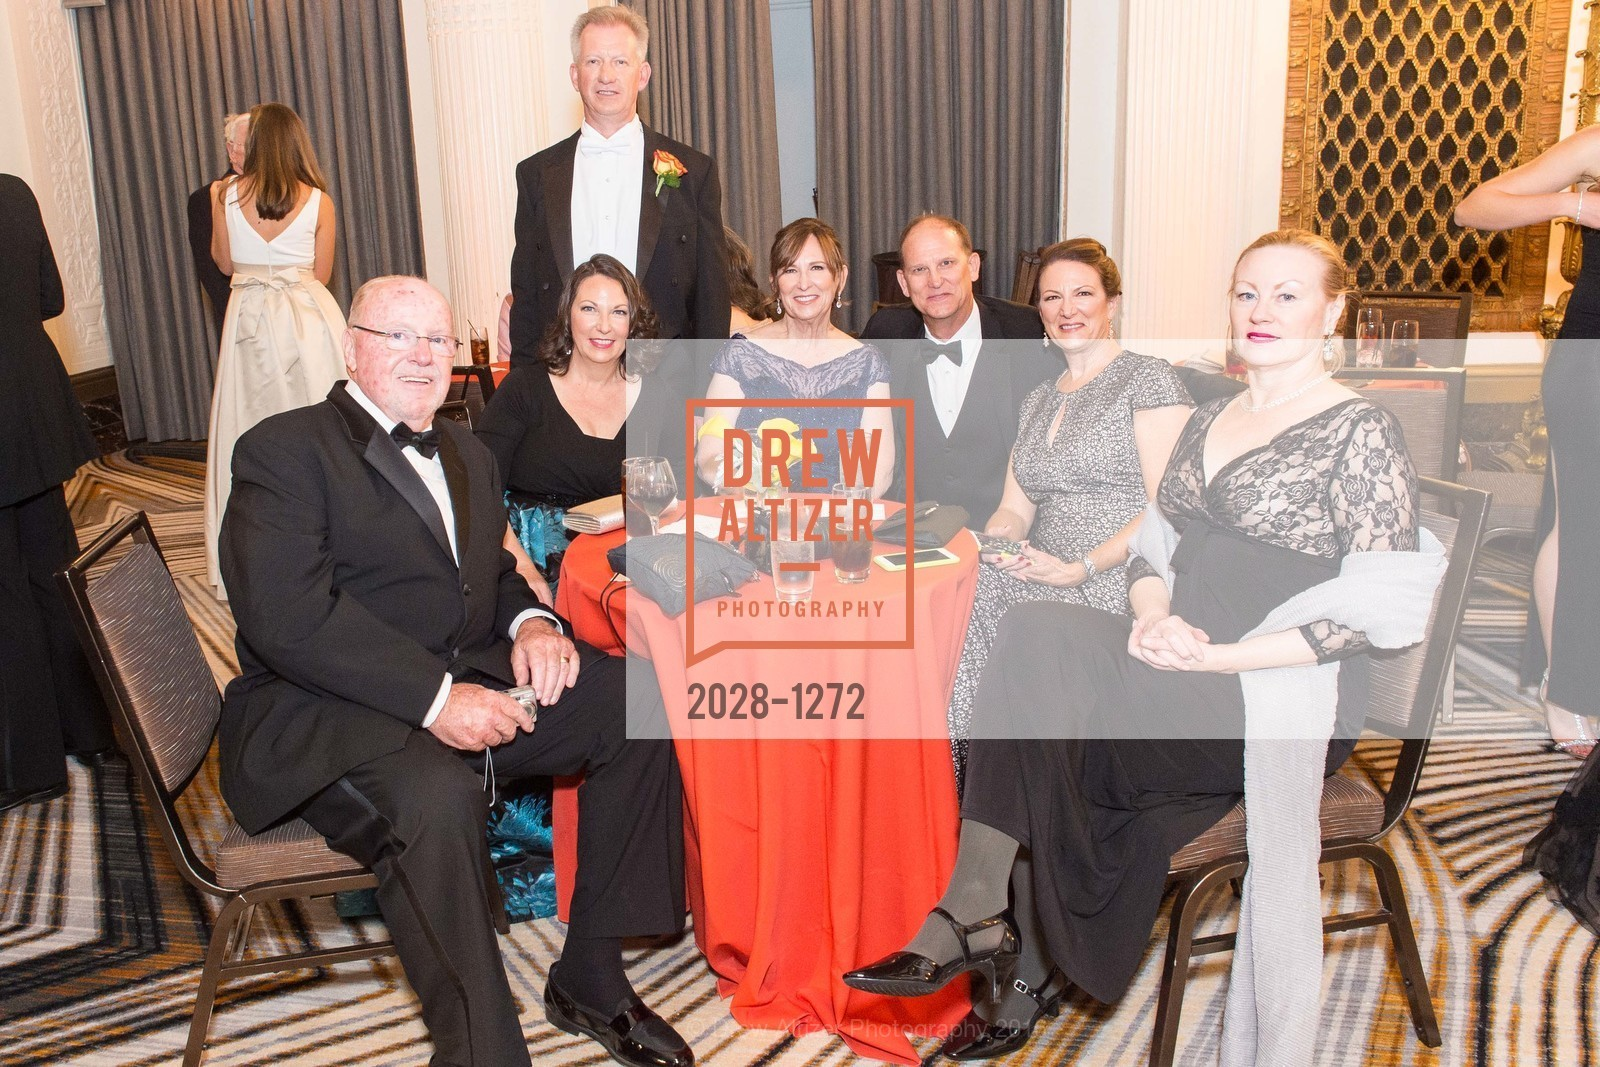 Jay Barnz, Johnna Coats, Richard Garman, Susan Coats, Philip Coats, Joyce Whitworth, Chris Jensen, Photo #2028-1272